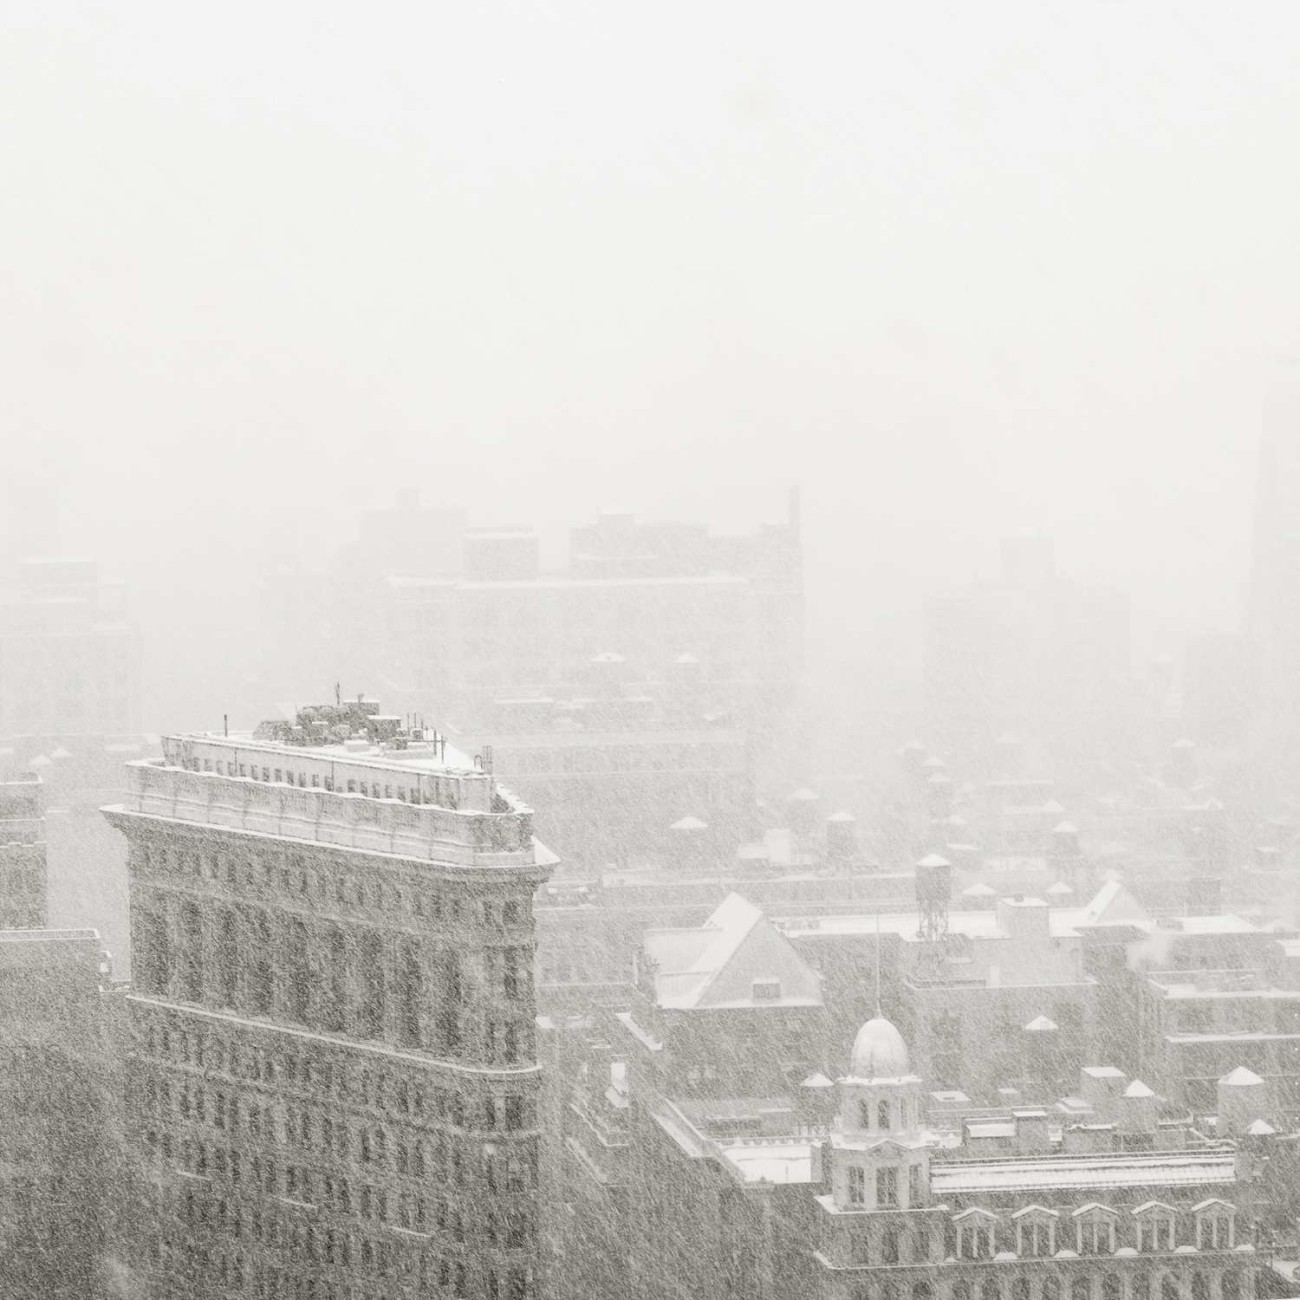 Flatiron district in heavy snow, NY, 2015